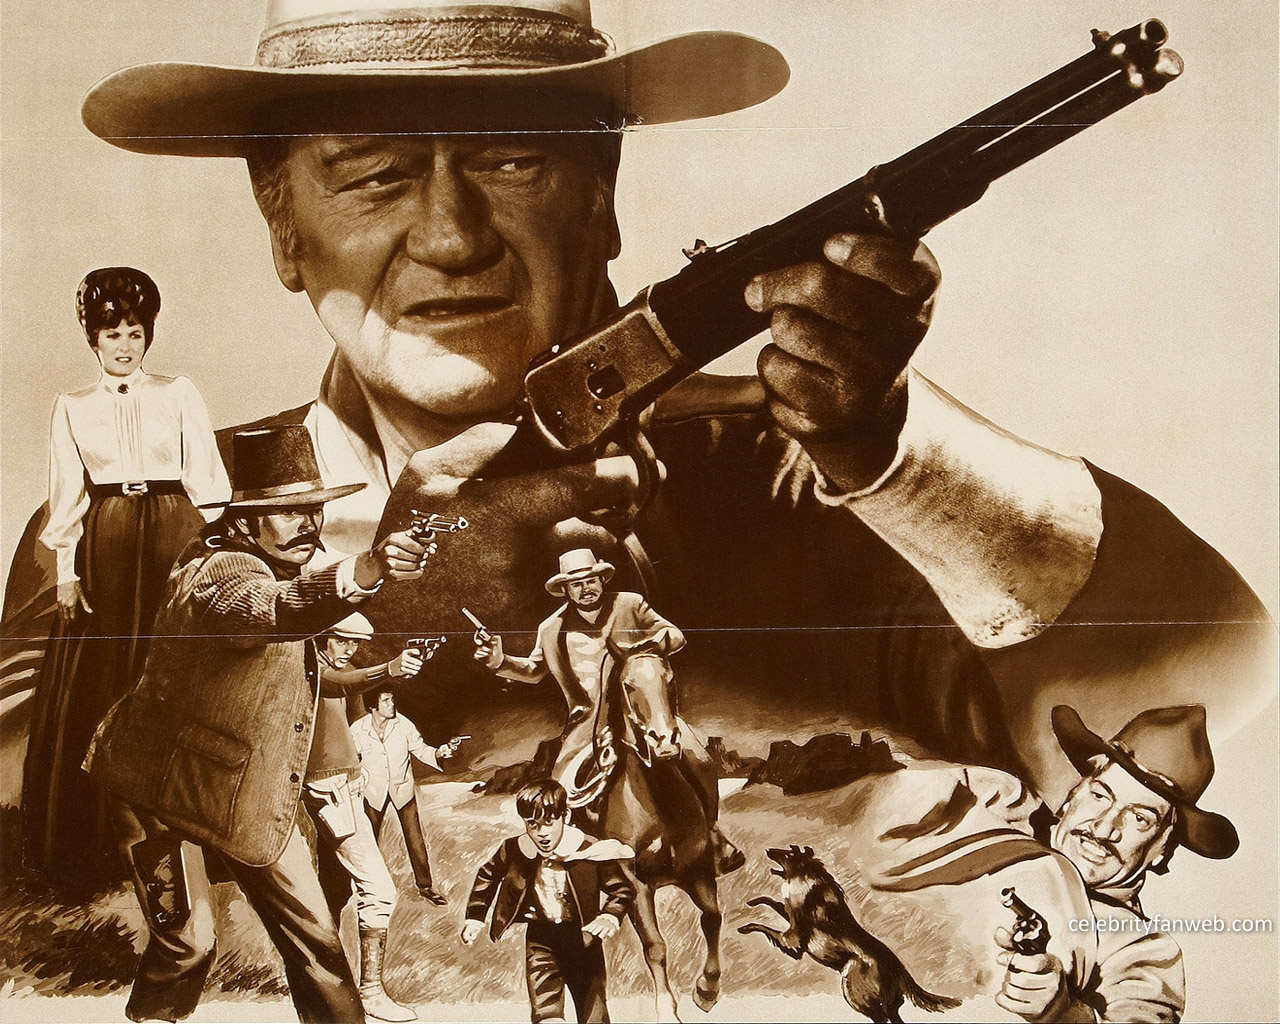 John Wayne Wallpapers and Background Images   stmednet 1280x1024